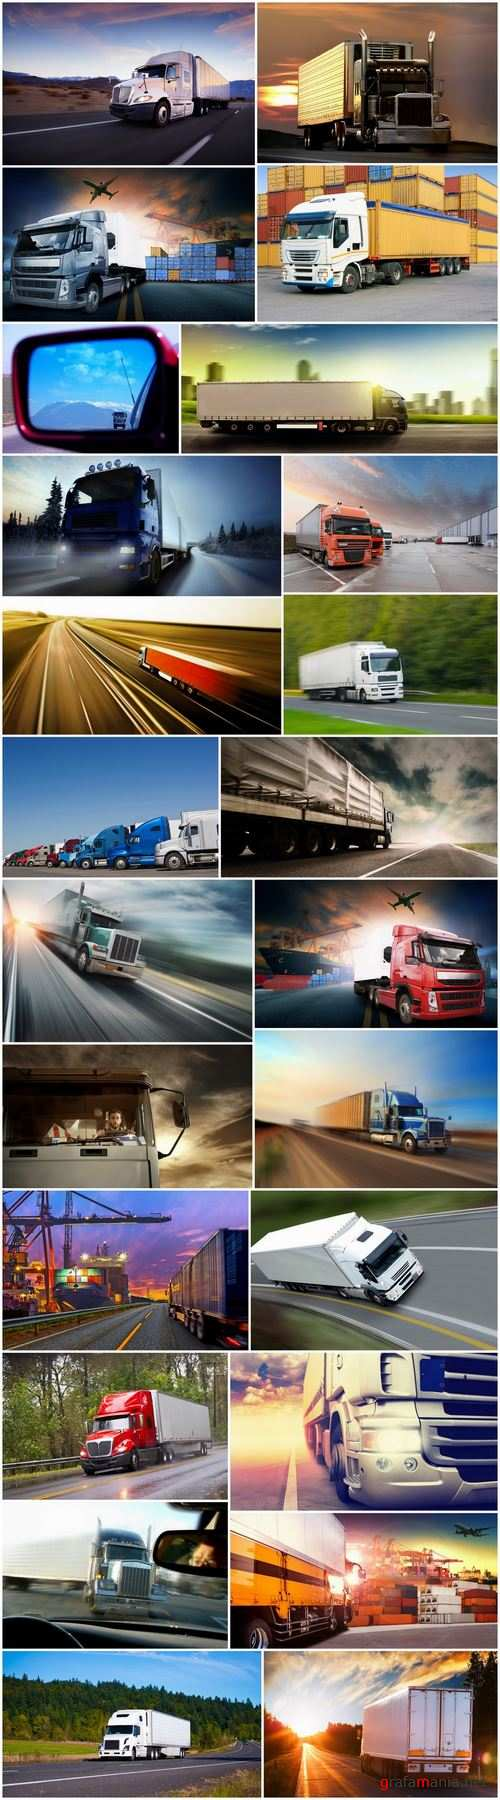 Truck road freight delivery container motor motor wheel road train 24 HQ Jpeg